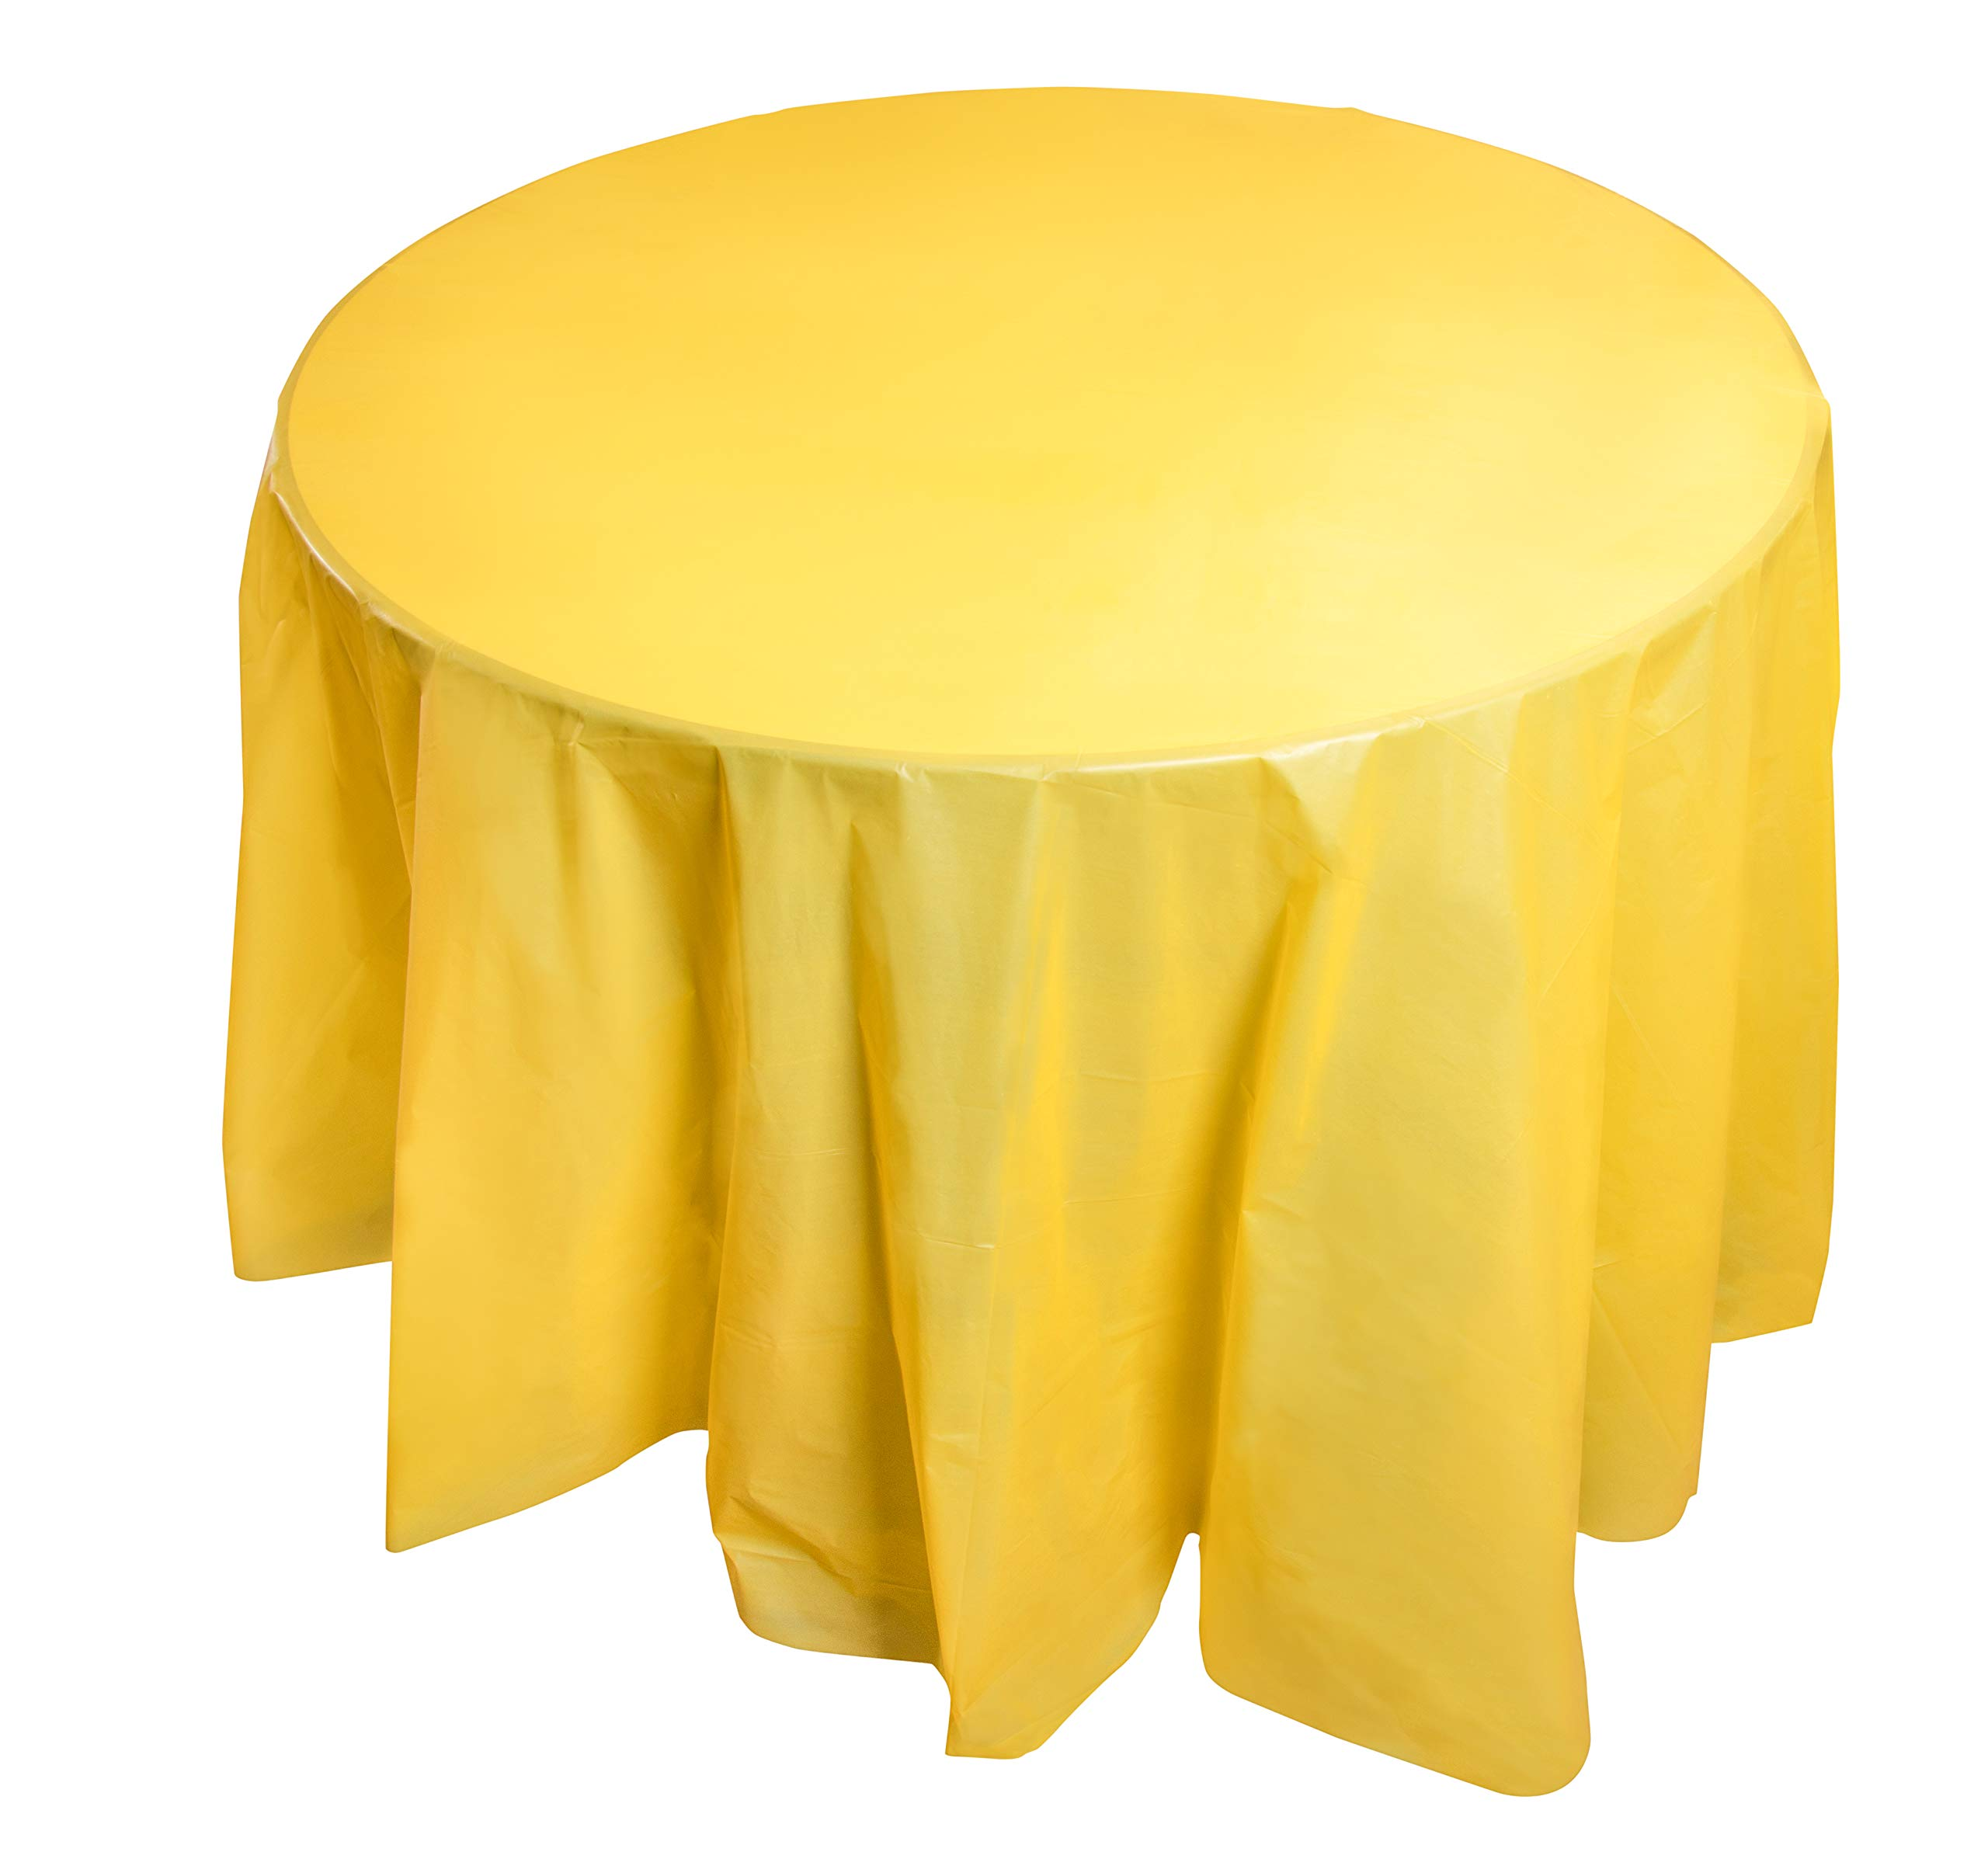 Juvale 12-Pack Yellow Plastic Tablecloth - 84-Inch Round Disposable Table Cover, Fits up to 72-Inch Round Tables, Yellow Themed Party Supplies by Juvale